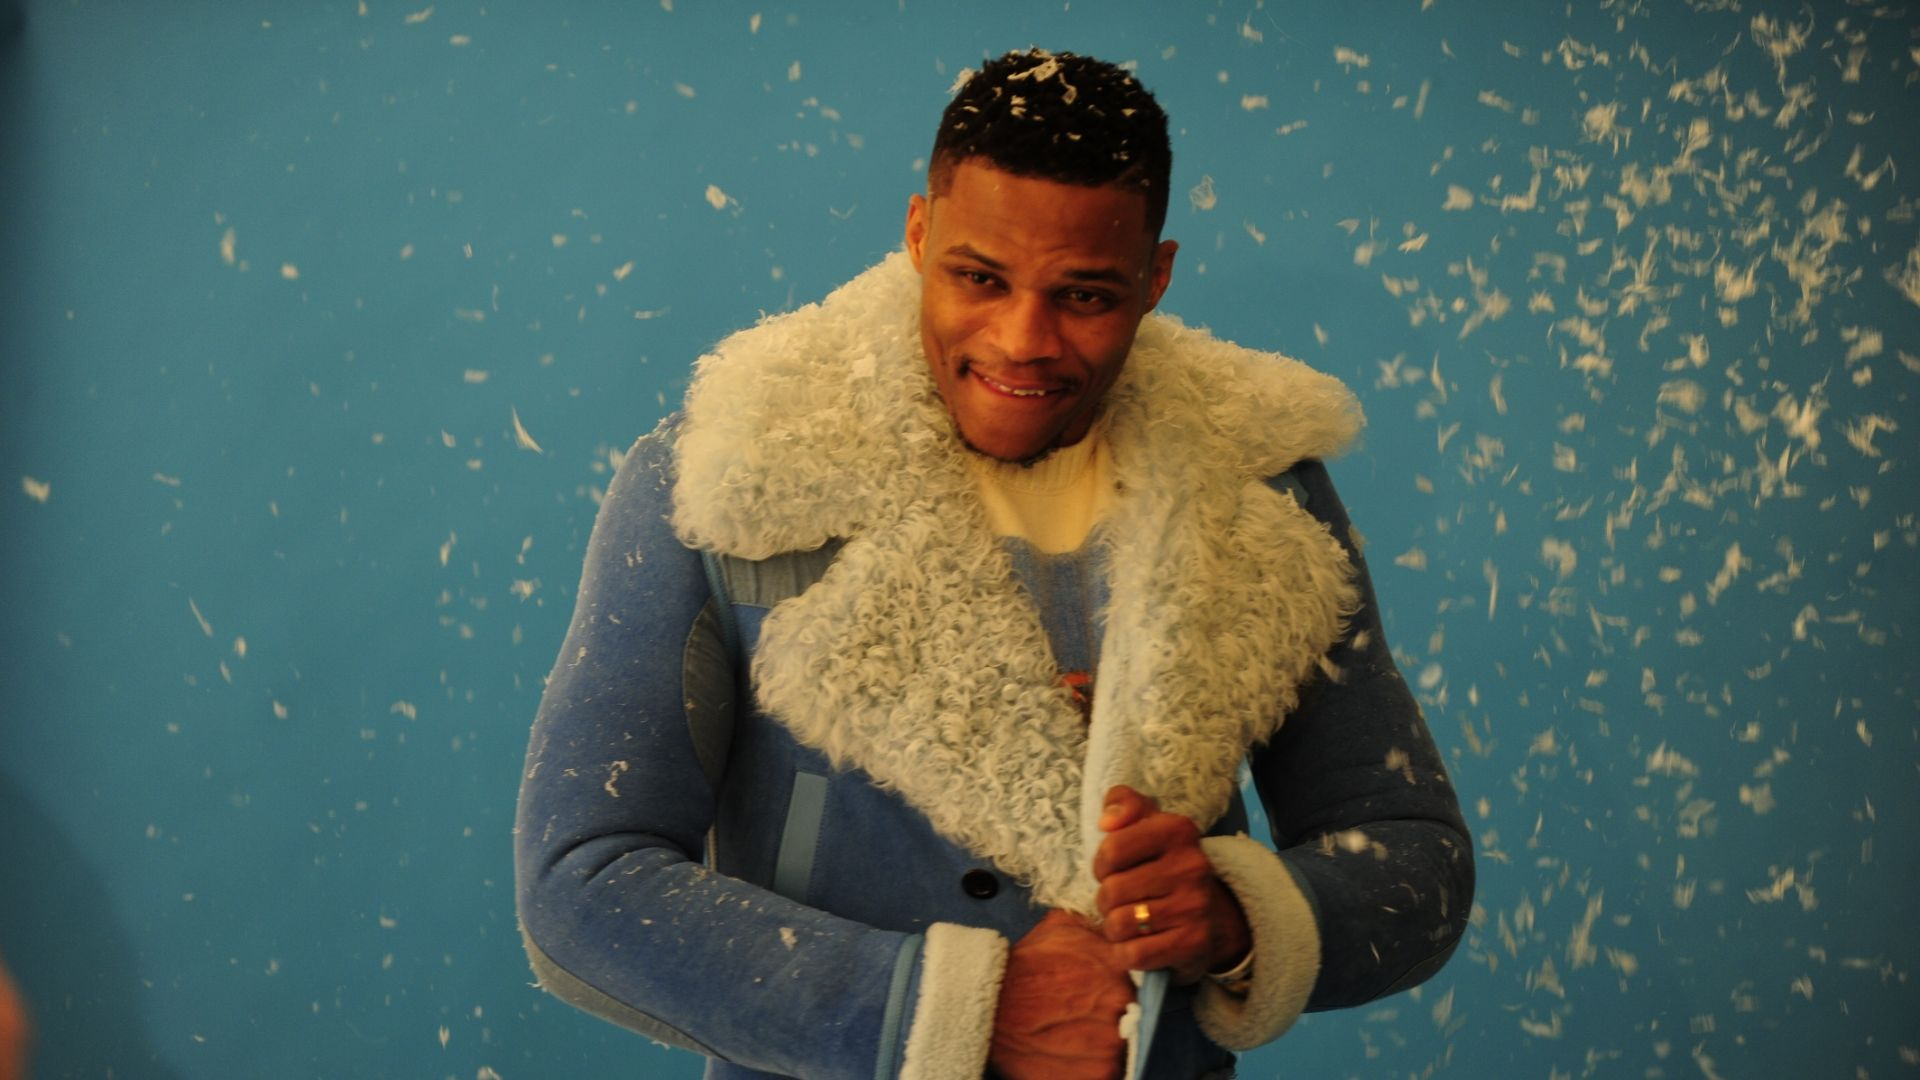 Westbrook's confidence makes him a fashion icon